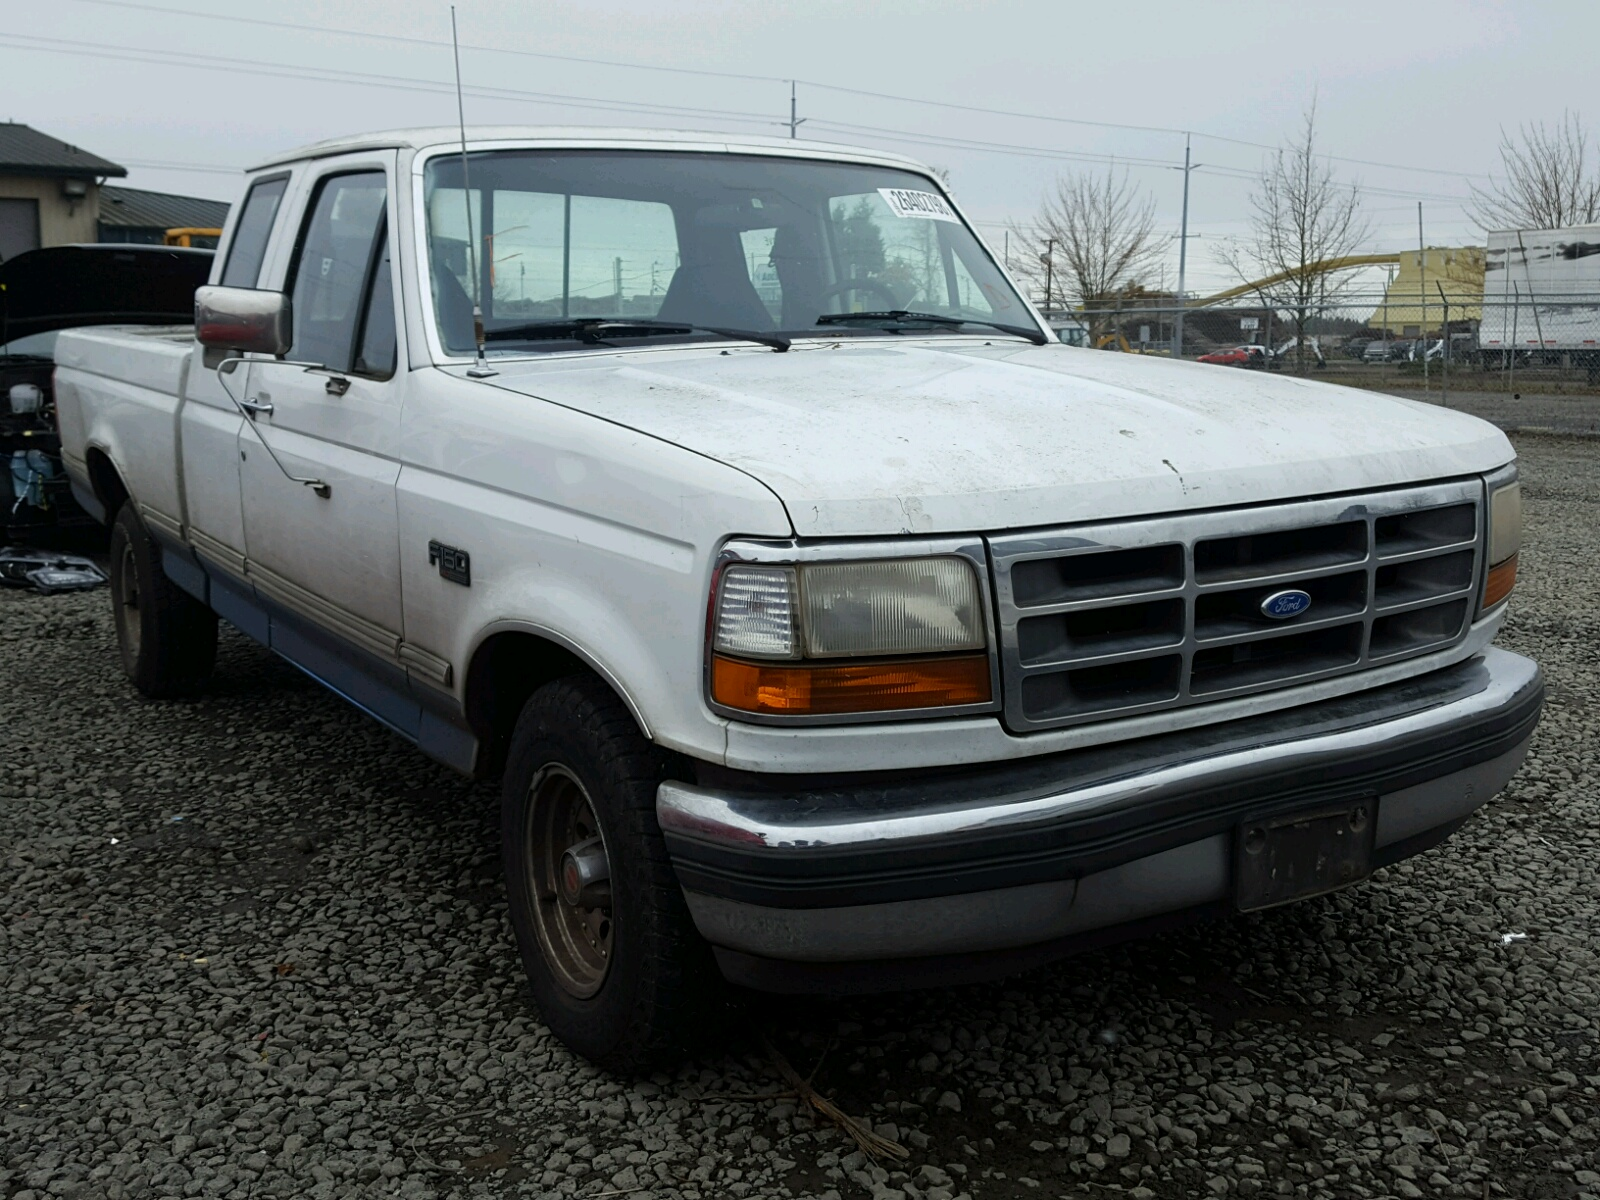 Auto auction ended on vin 1ftex15n6nka24214 1992 ford f150 in or eugene